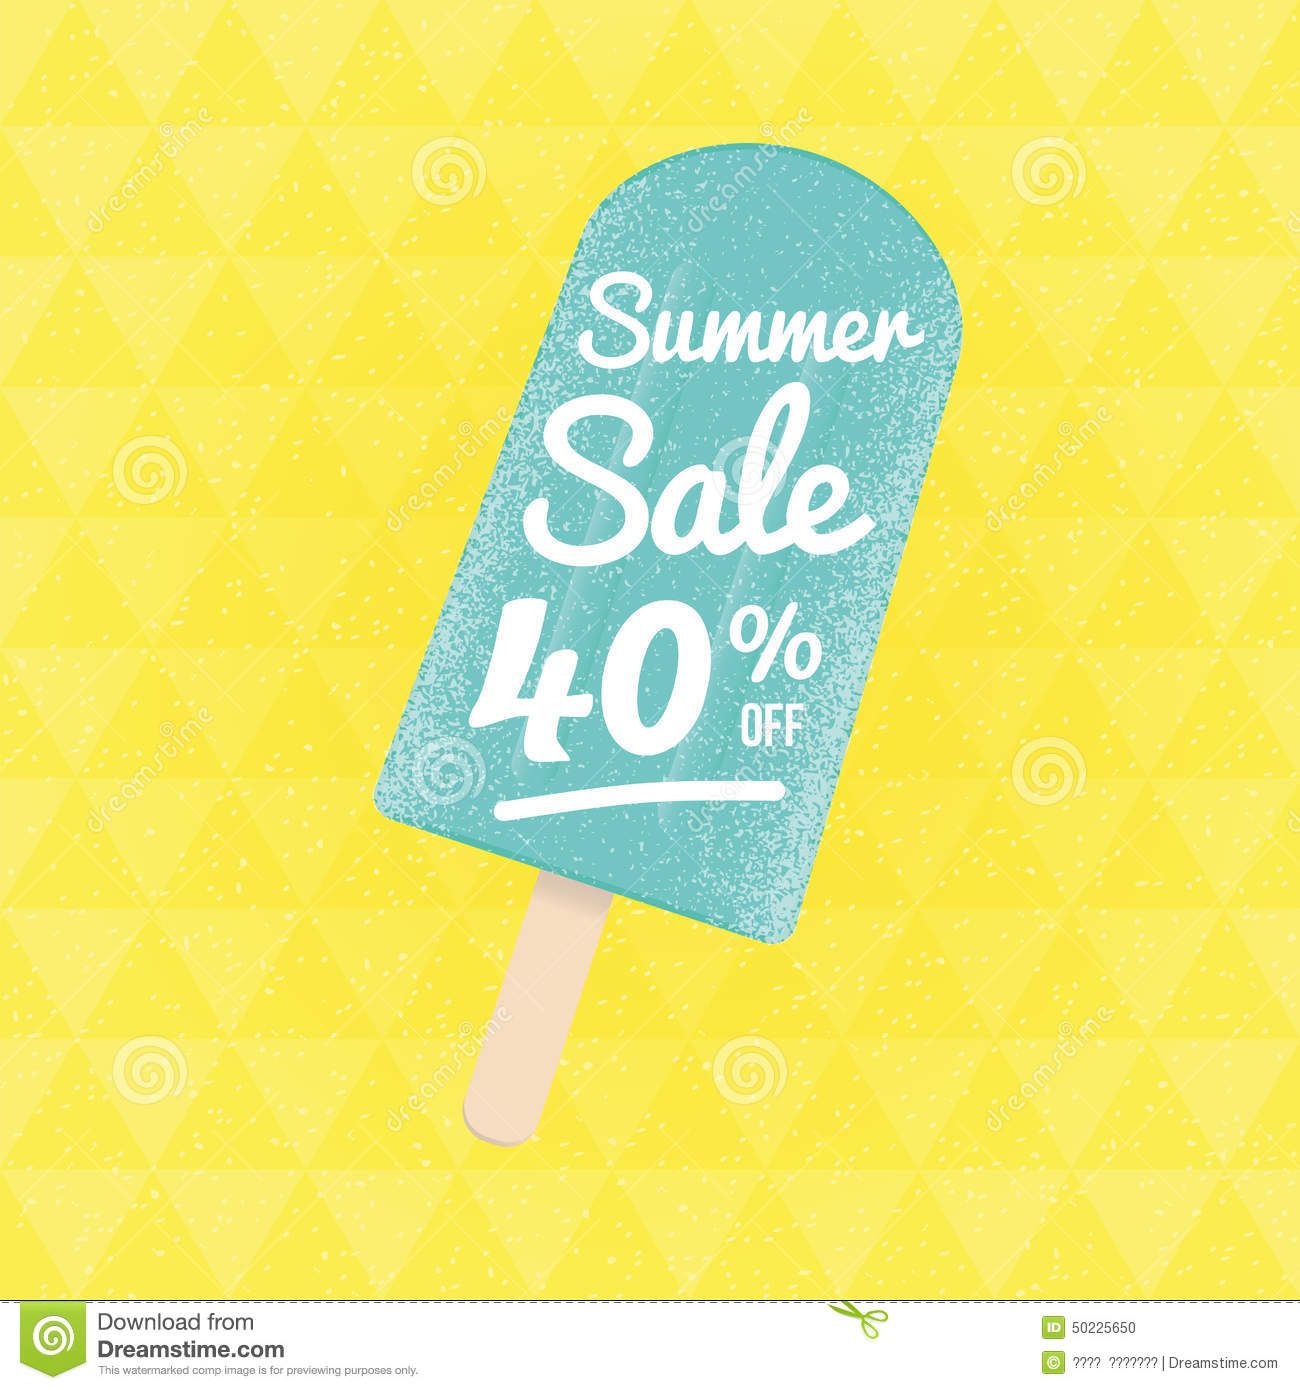 Sale: Summer Sale 40% Off. Stock Vector. Illustration Of Poster